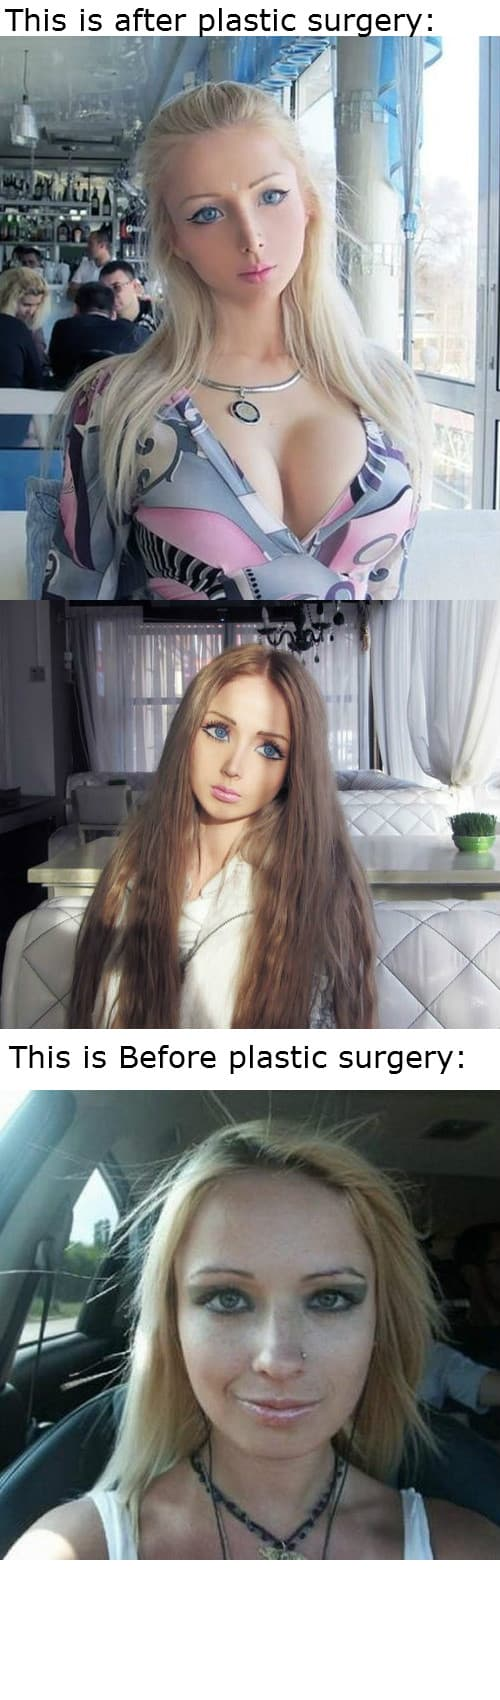 Living Barbie Before And After Plastic Surgery photo - 1